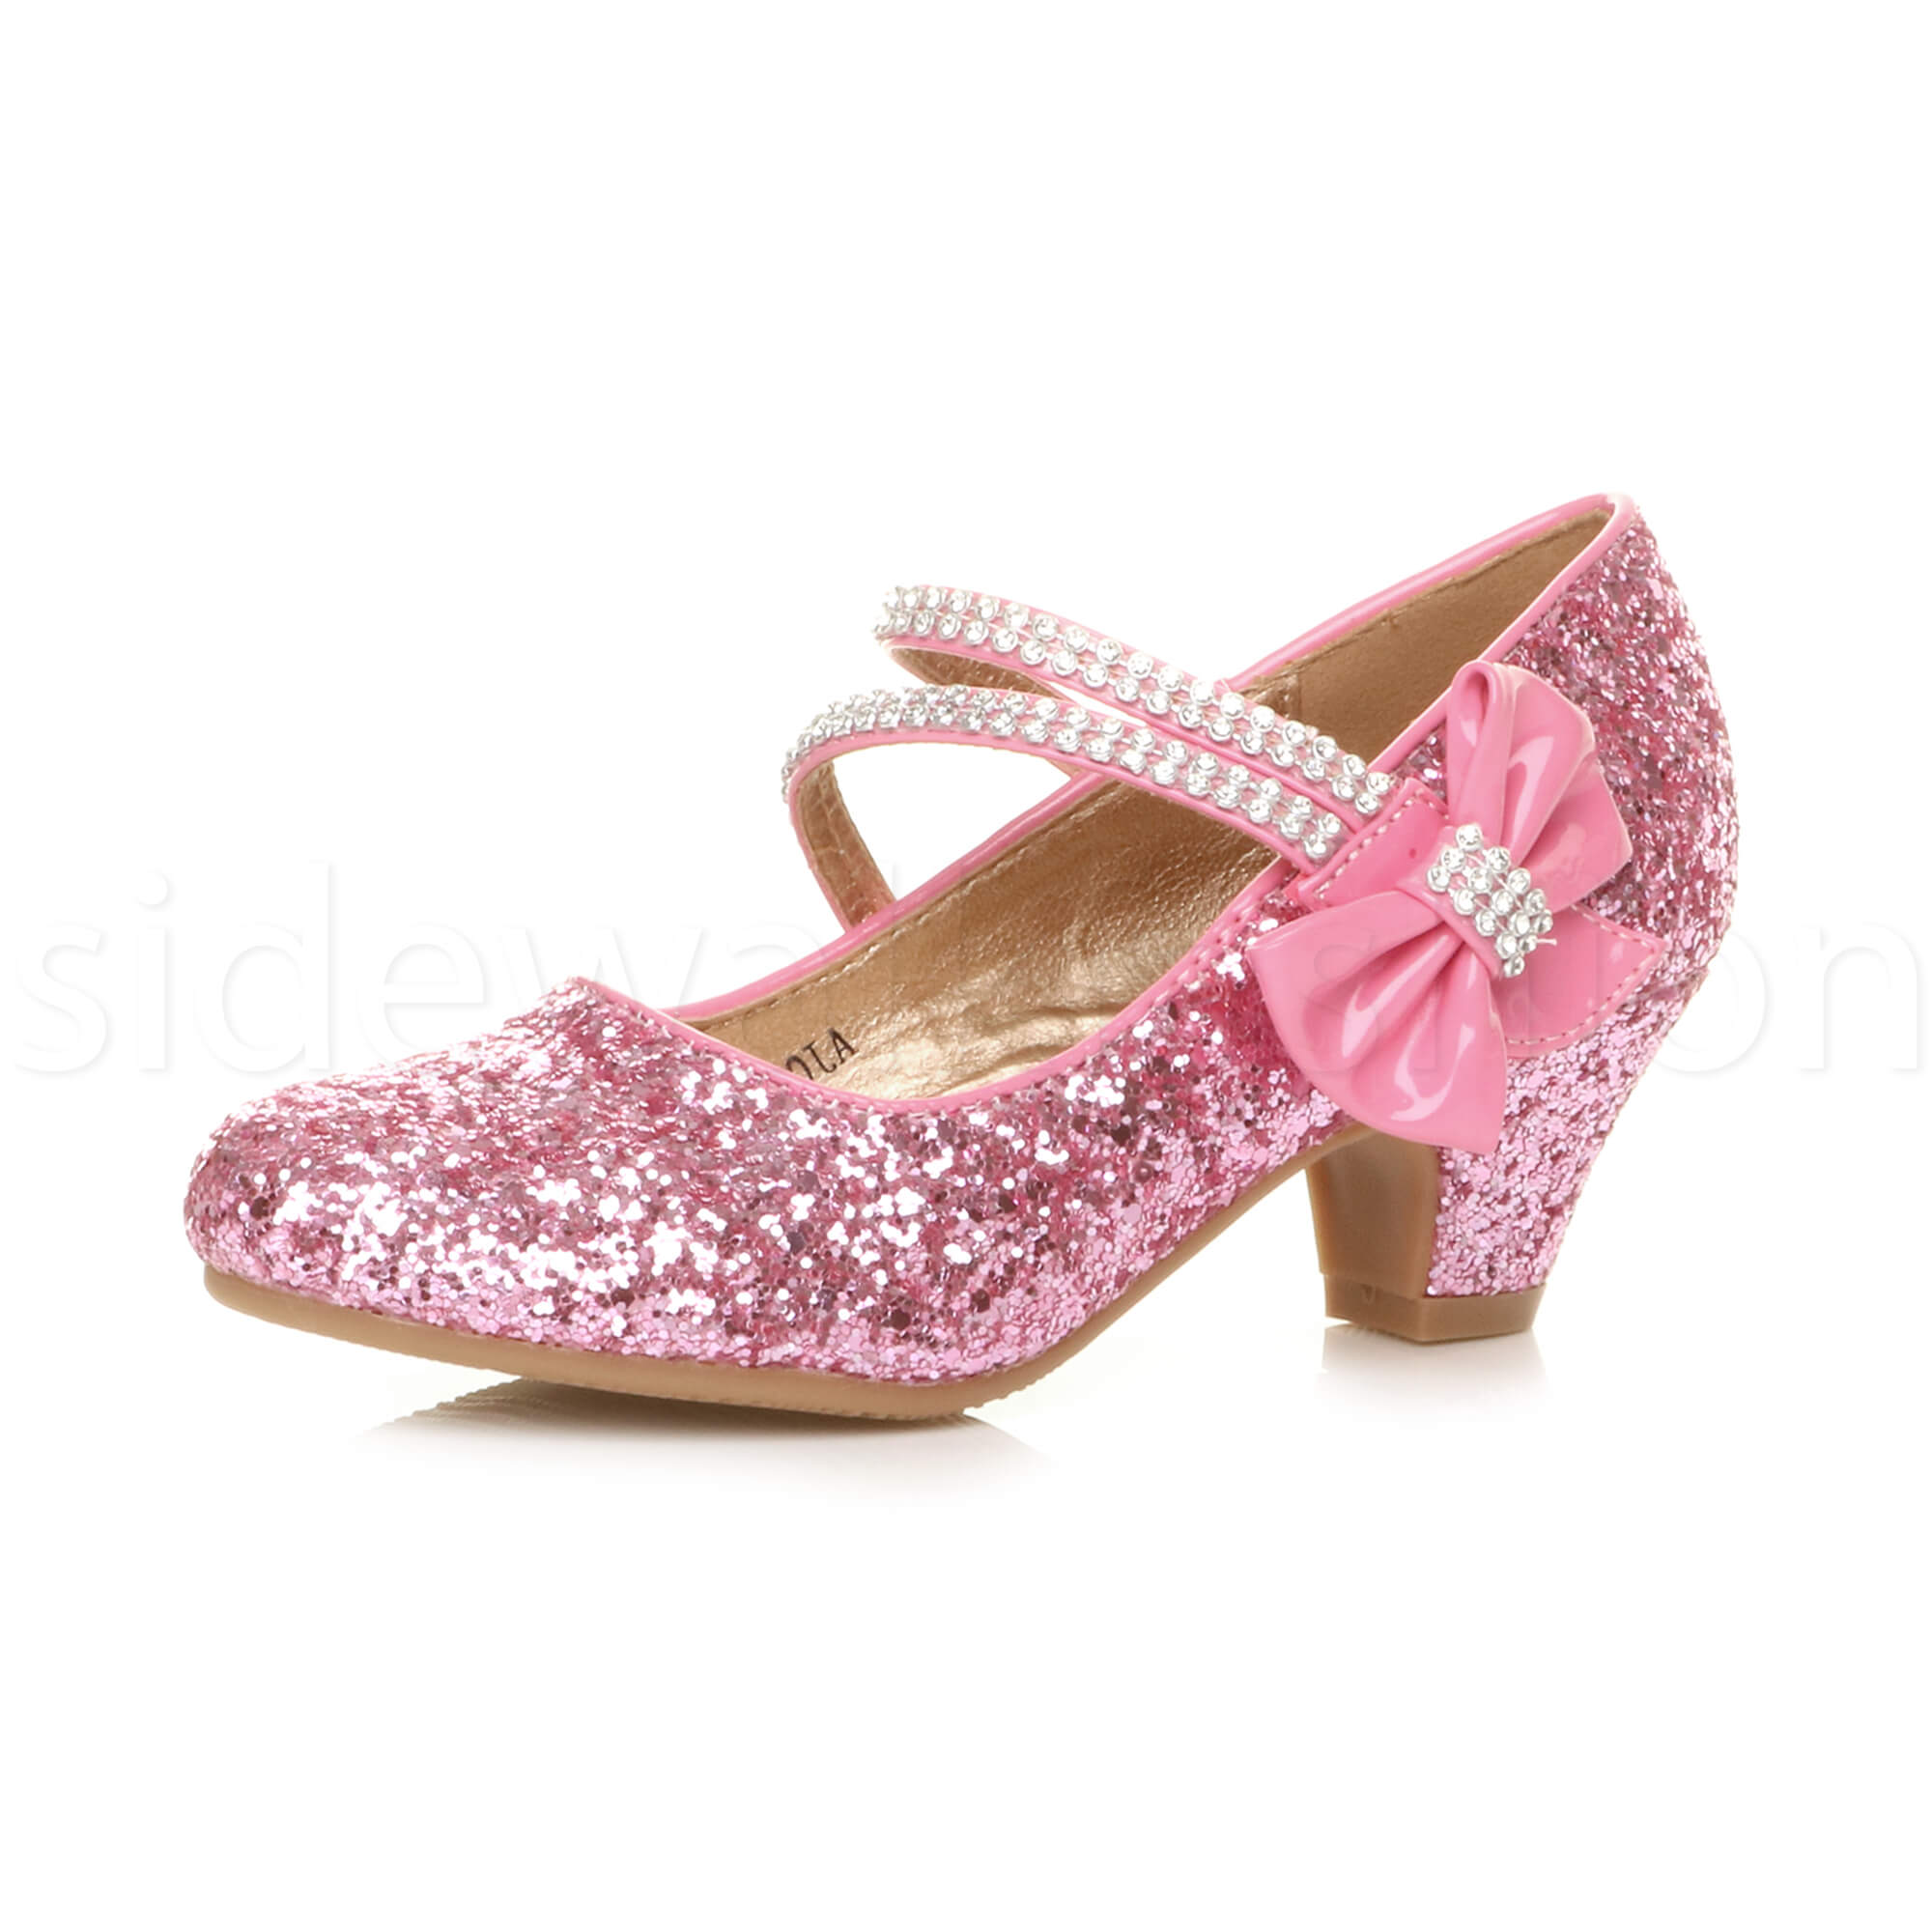 Childrens Party Shoes Uk